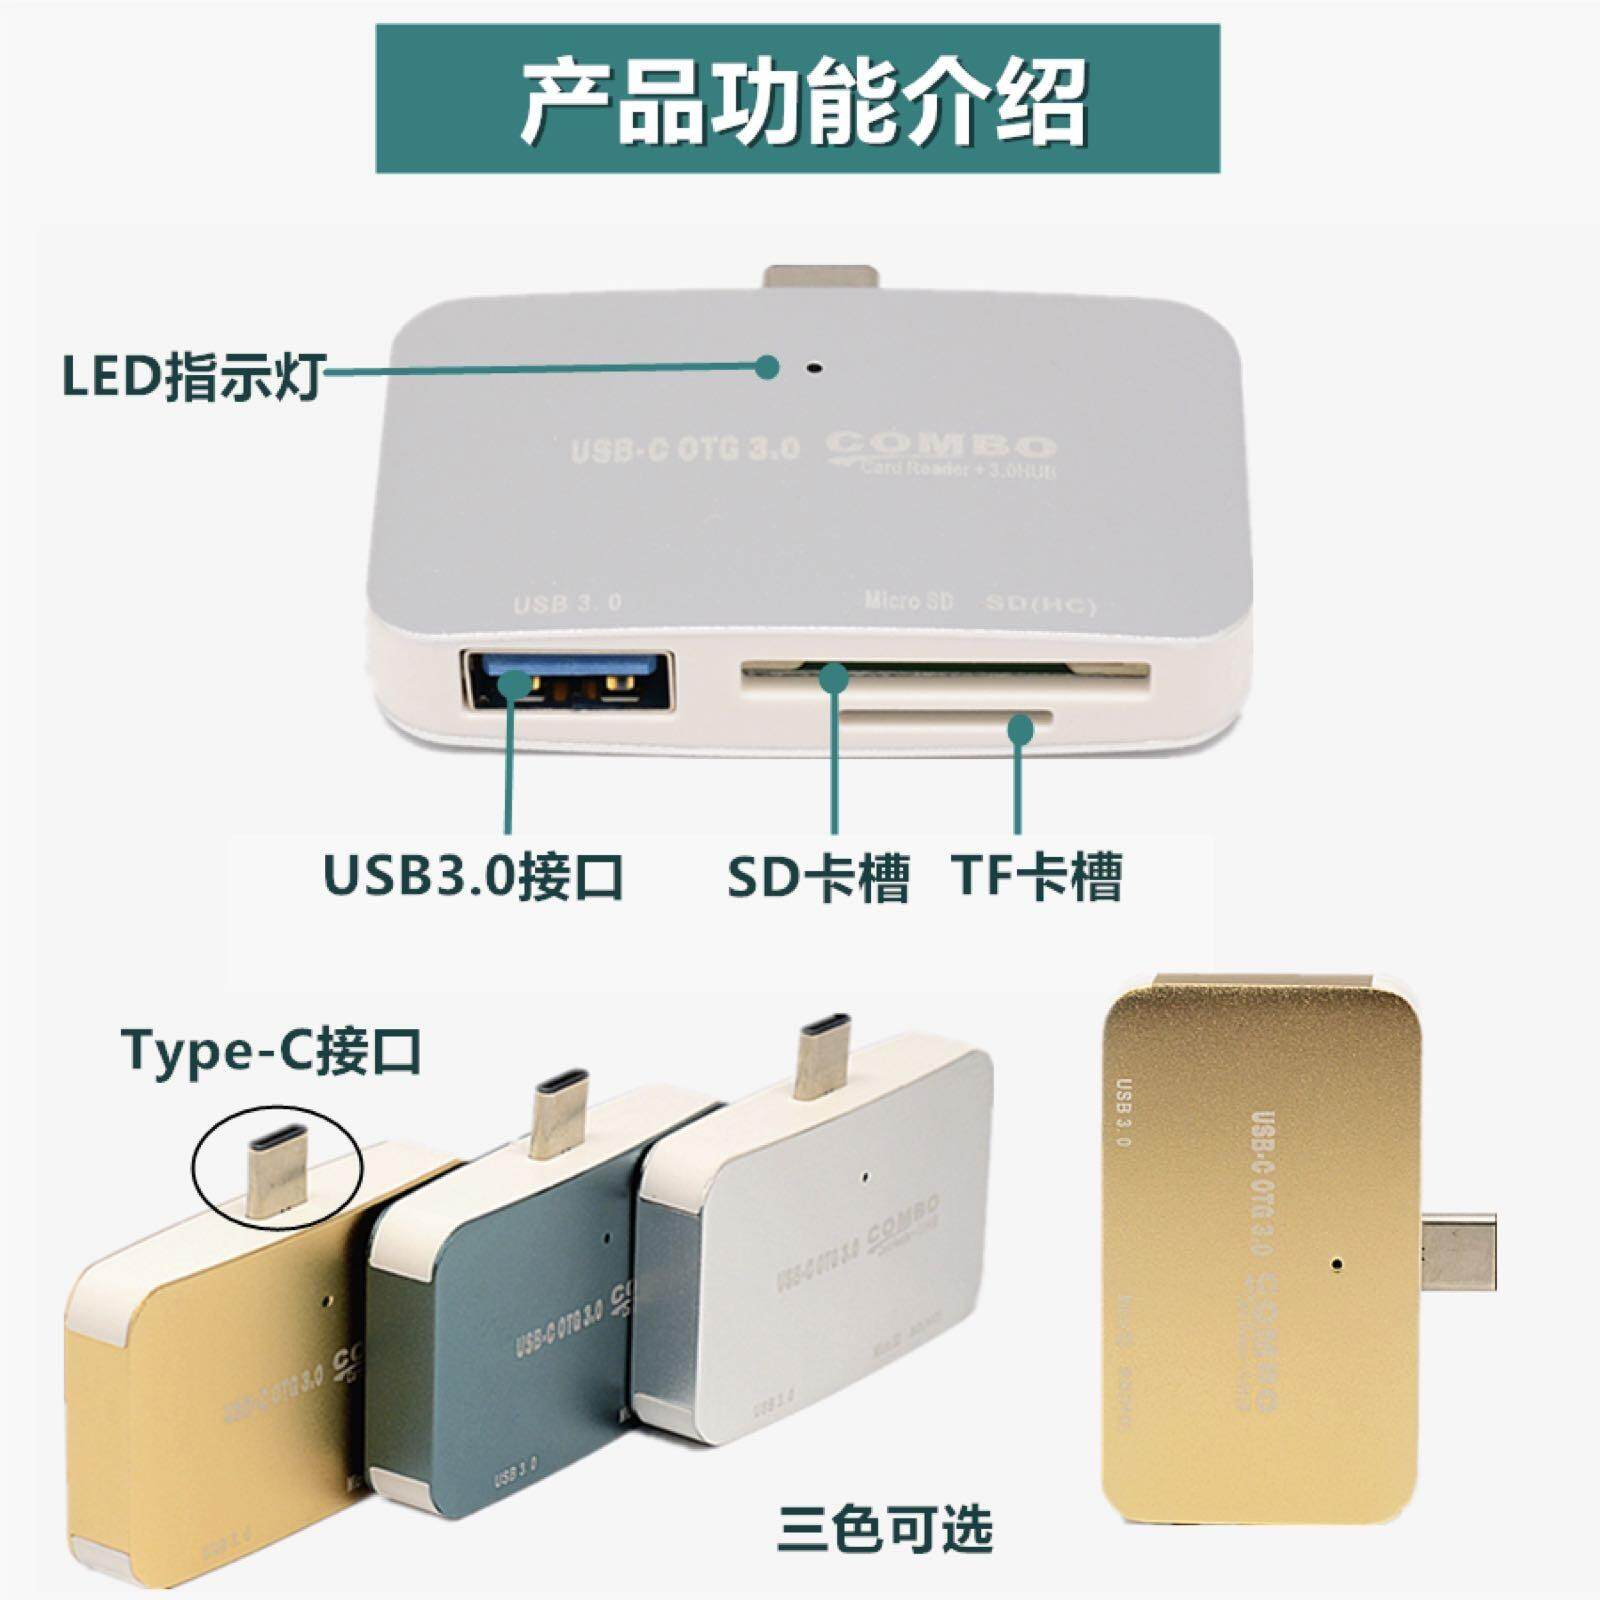 Usb Hub Type C To Usb 3.0 Rj 45 สำหรับ Sd Tf Card Reader Adapter By Hua Shop.